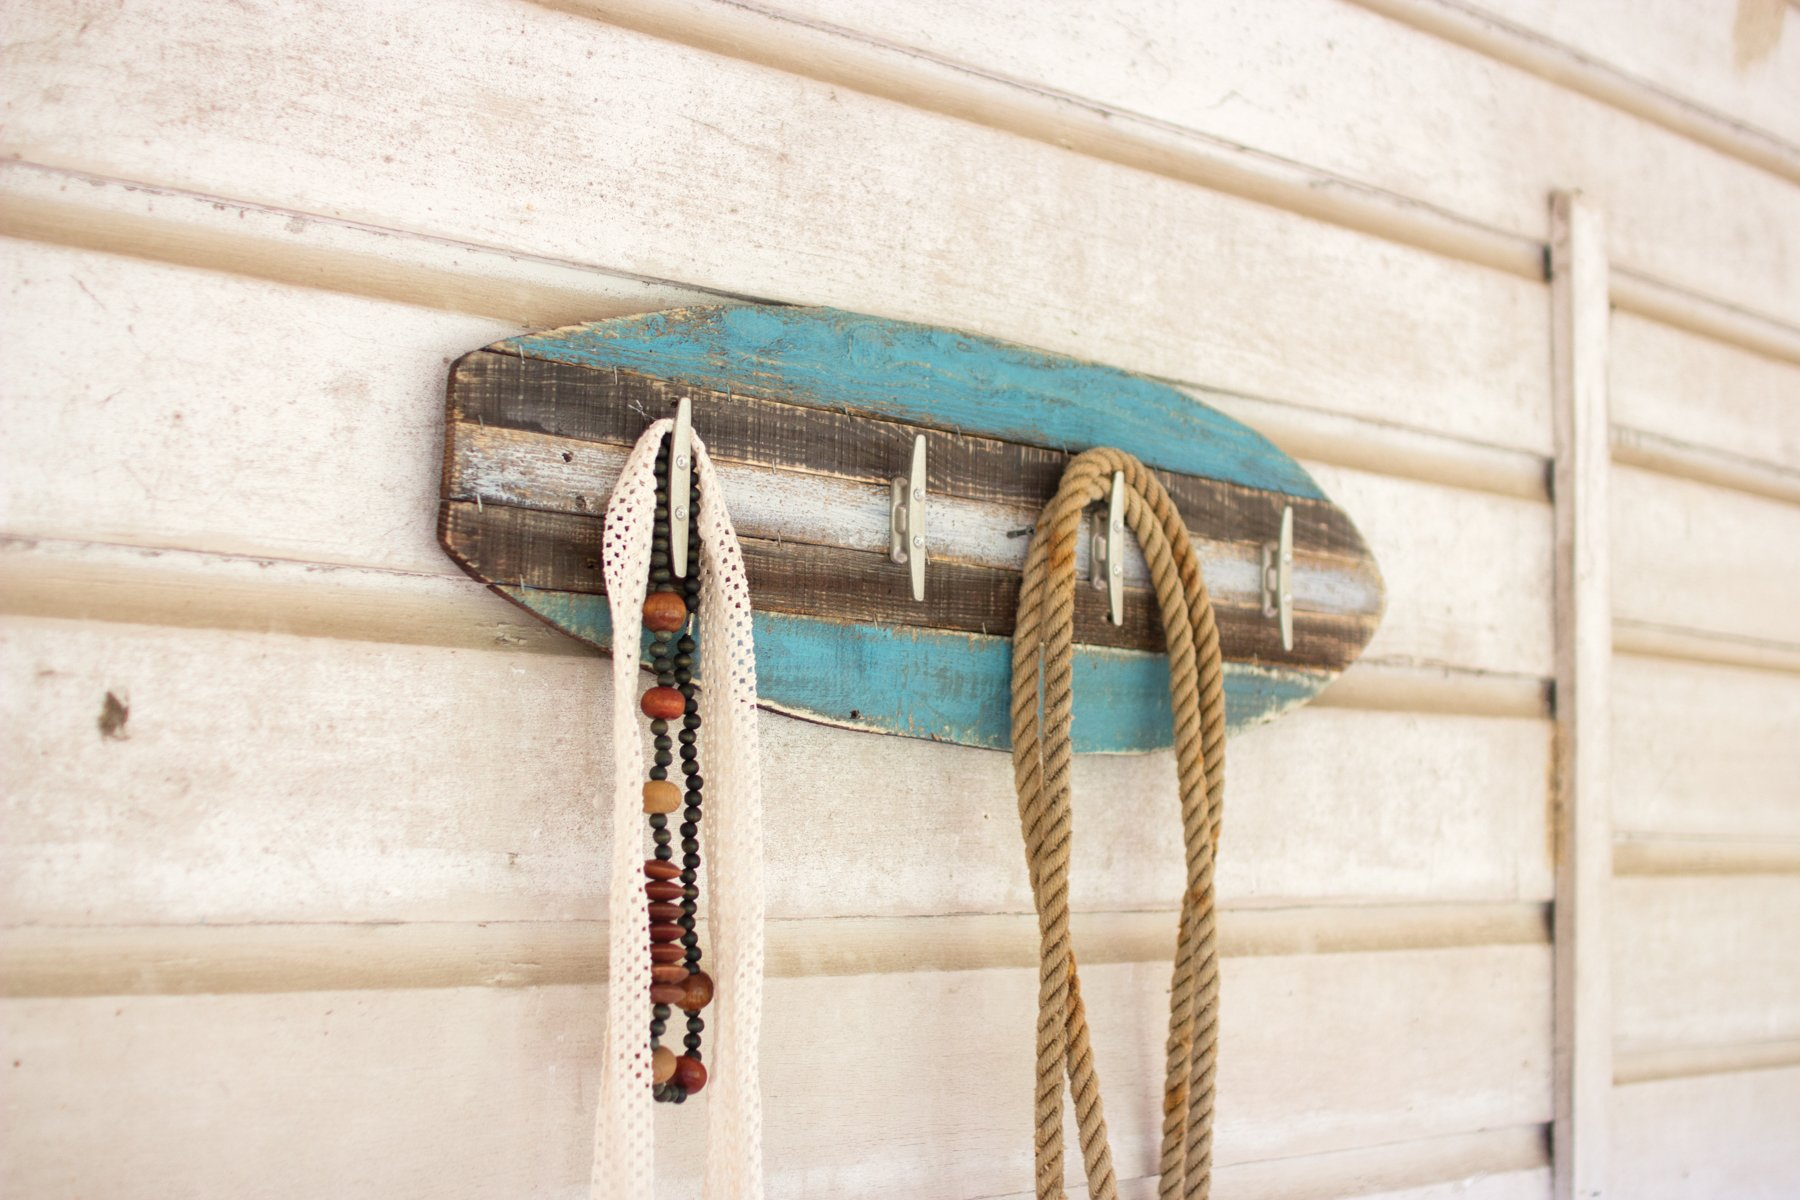 GwG Outlet Wooden Surfboard Coat Rack with Cleat Hangers CGU2178